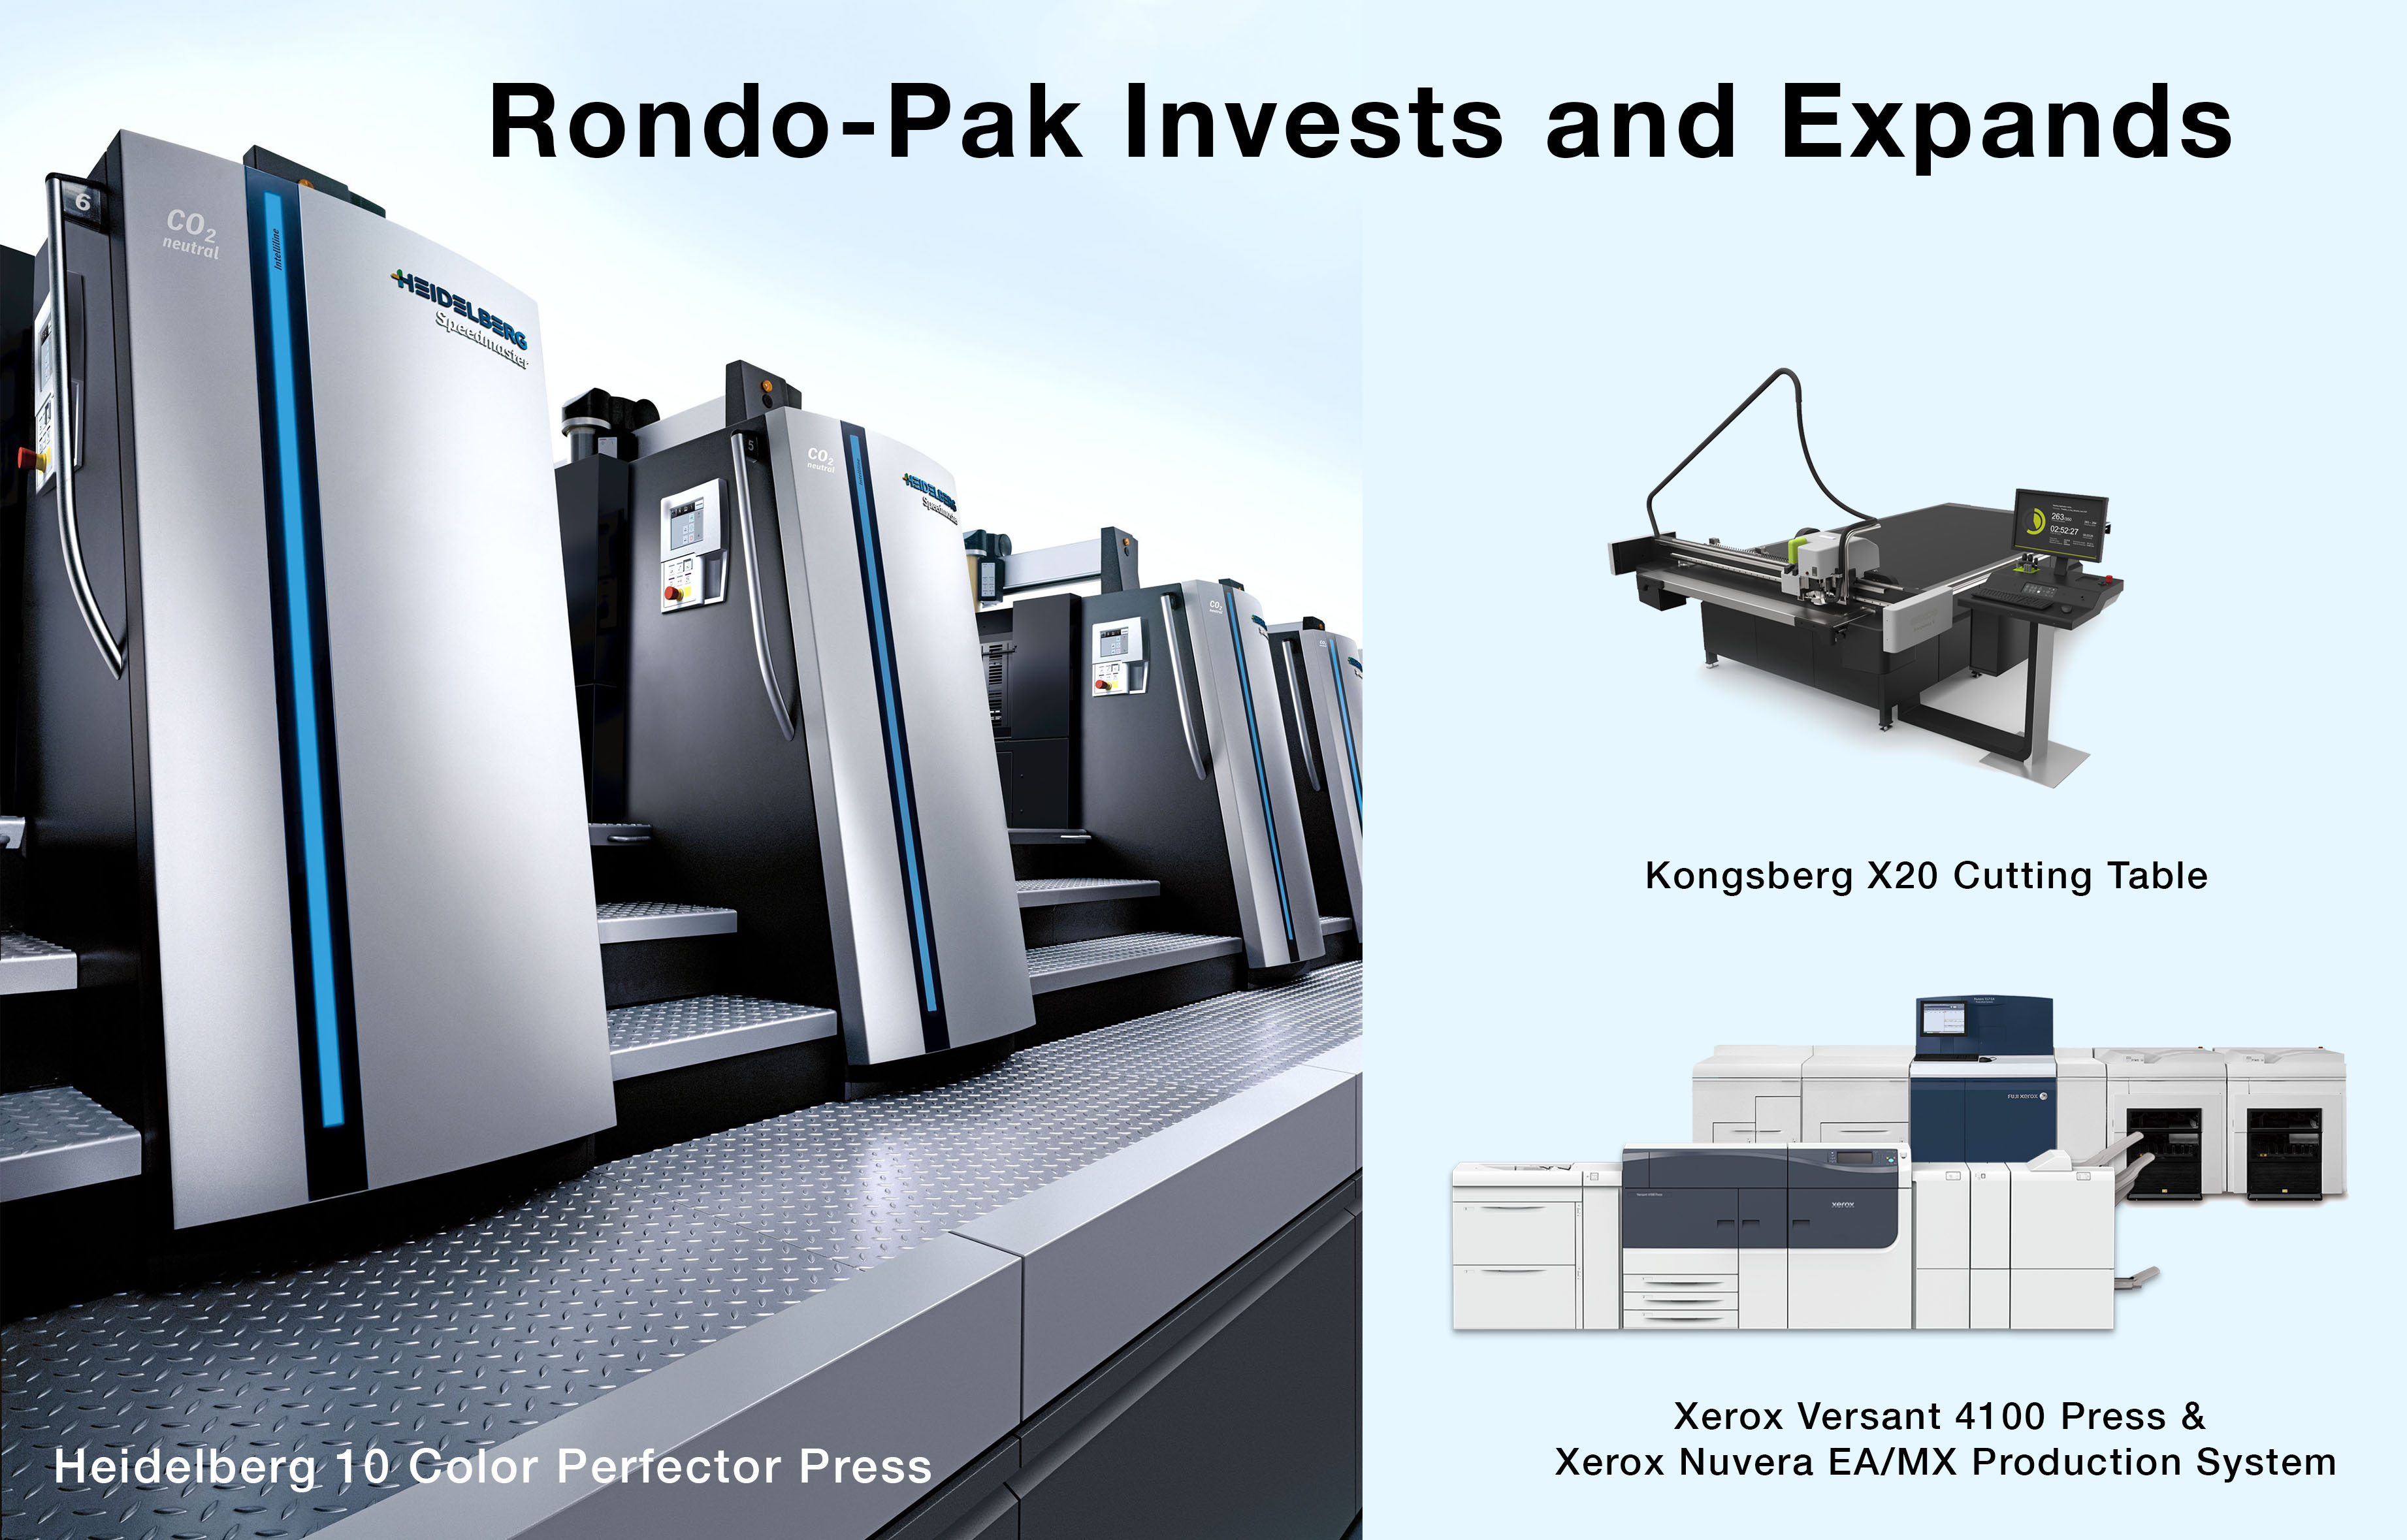 Rondo-Pak Announces Major Equipment Investments to Enhance Capabilities and Expand Capacity